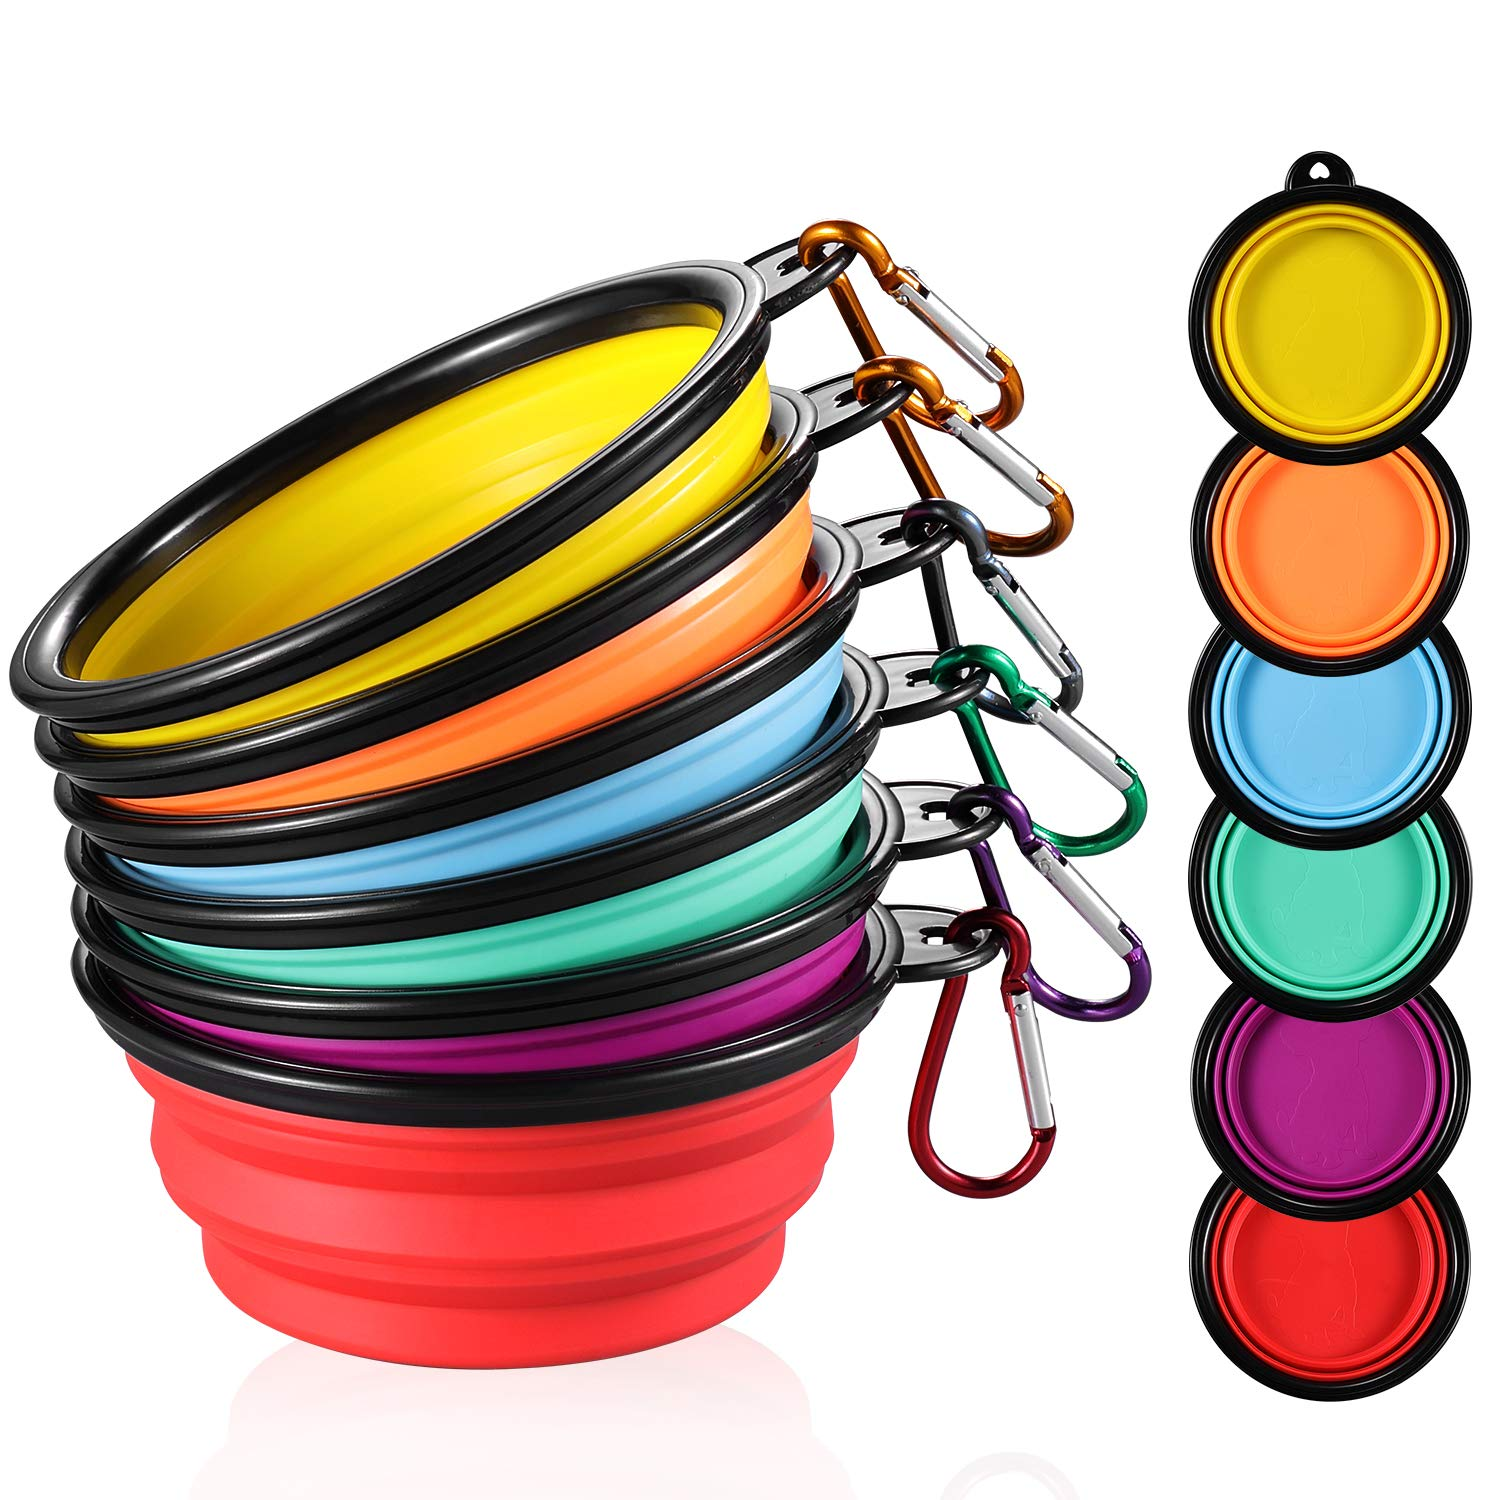 ME.FAN Collapsible Dog Bowl [6-Pack] Travel Portable Dog Bowl(12oz) Silicone Foldable Travel Bowl/Pet Food Bowl/Cat Water Bowl/Silicone Pet Expandable Bowls + 6 Carabiners Per Set (Black Rimmed by ME.FAN